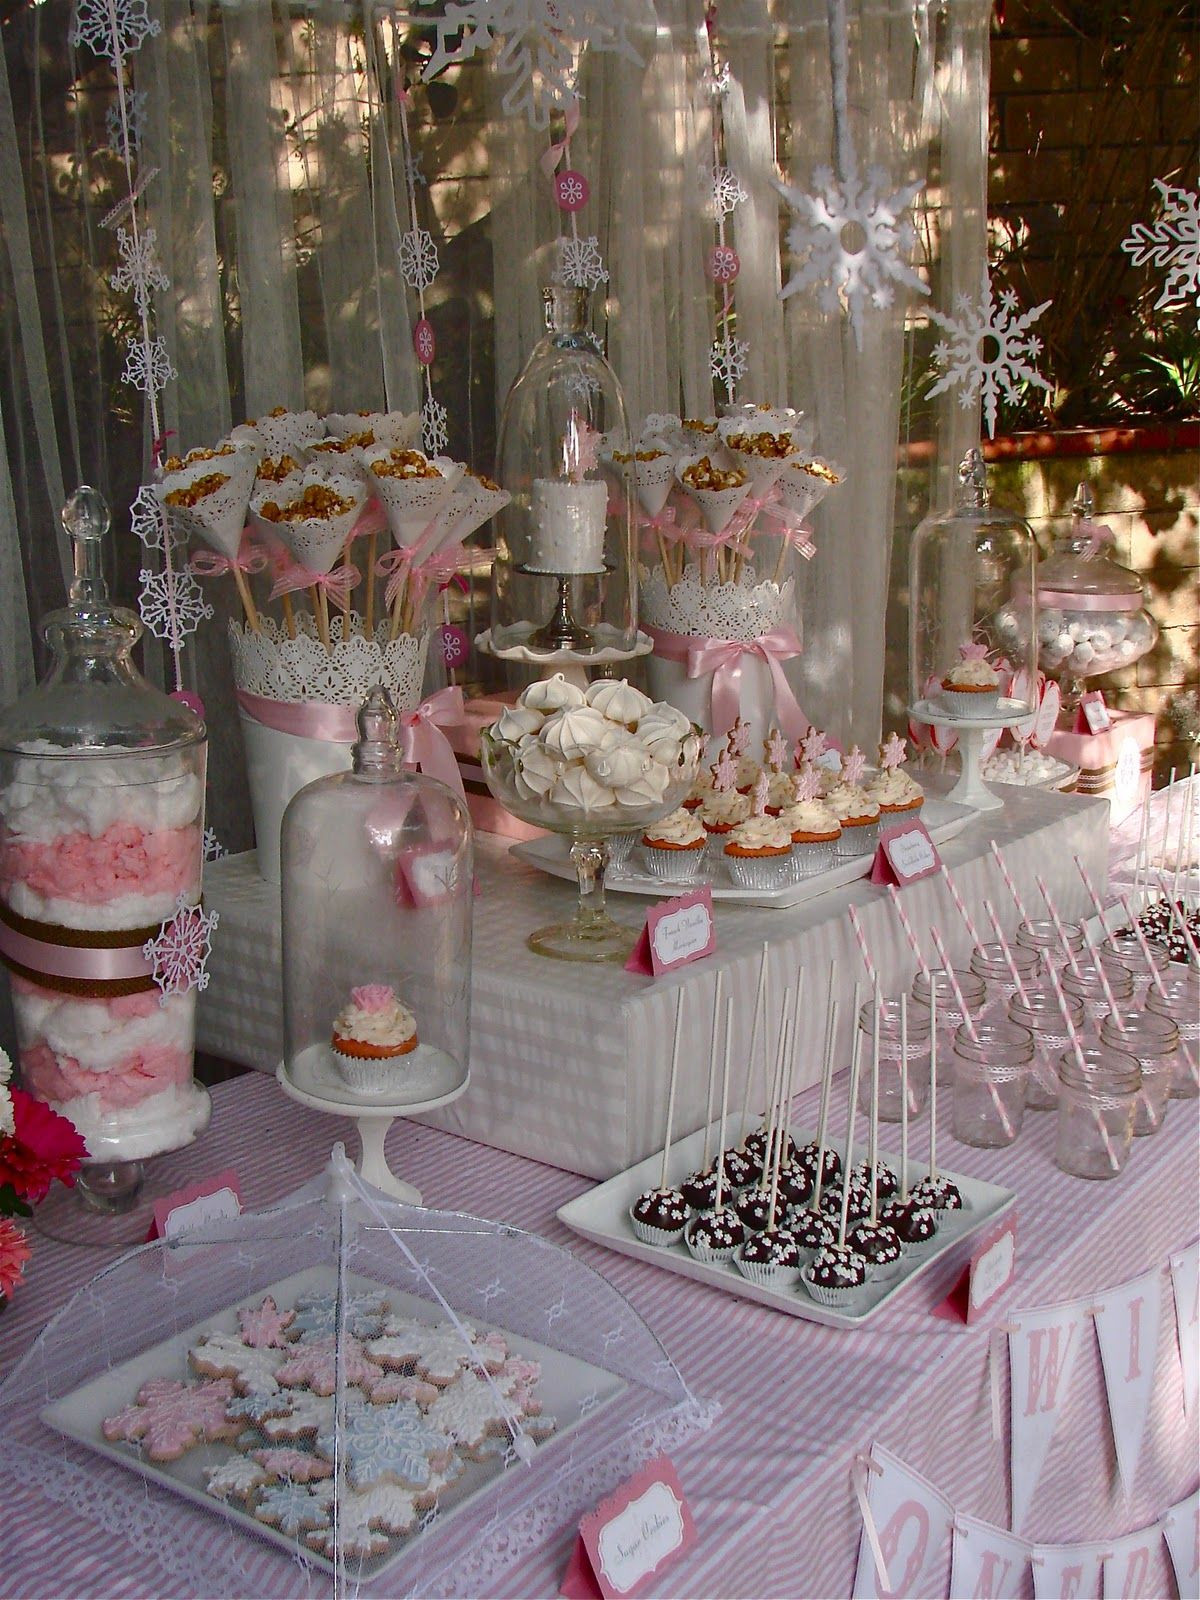 Winter Birthday Party Ideas For 1 Year Old  I am in love with this pretty in pink Winter e derland